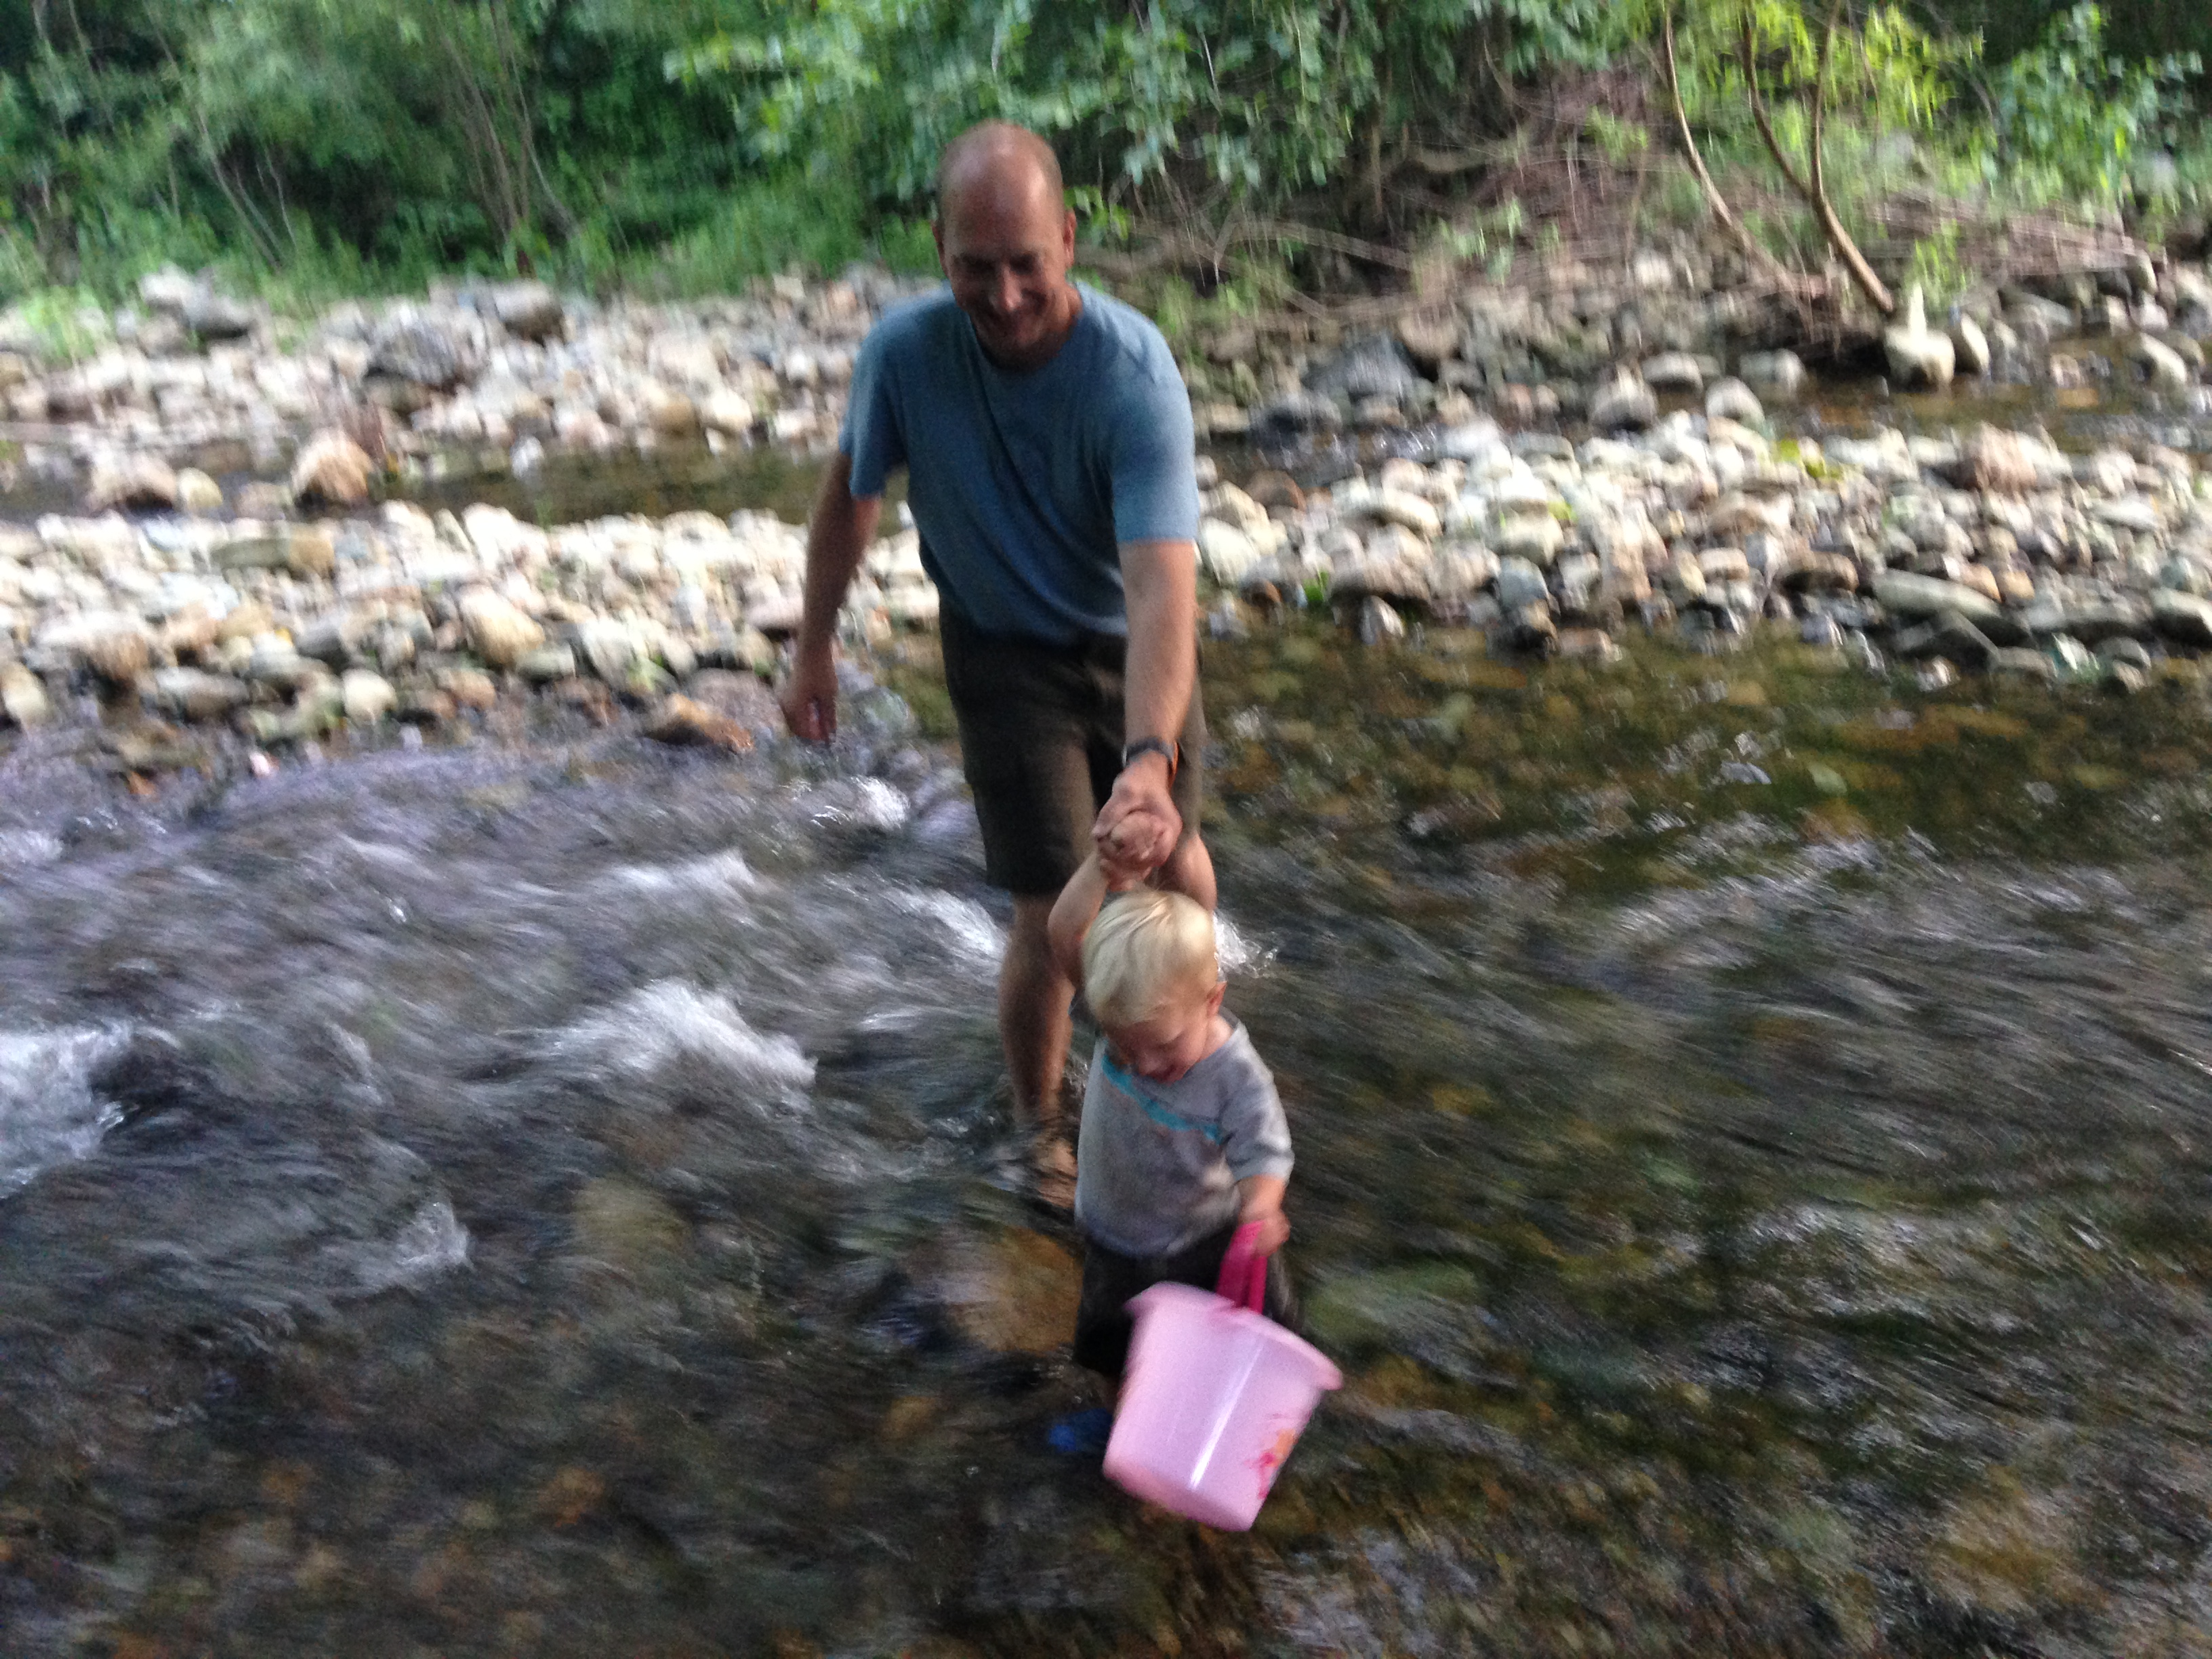 Ches trying to help Kolby not get washed downstream.